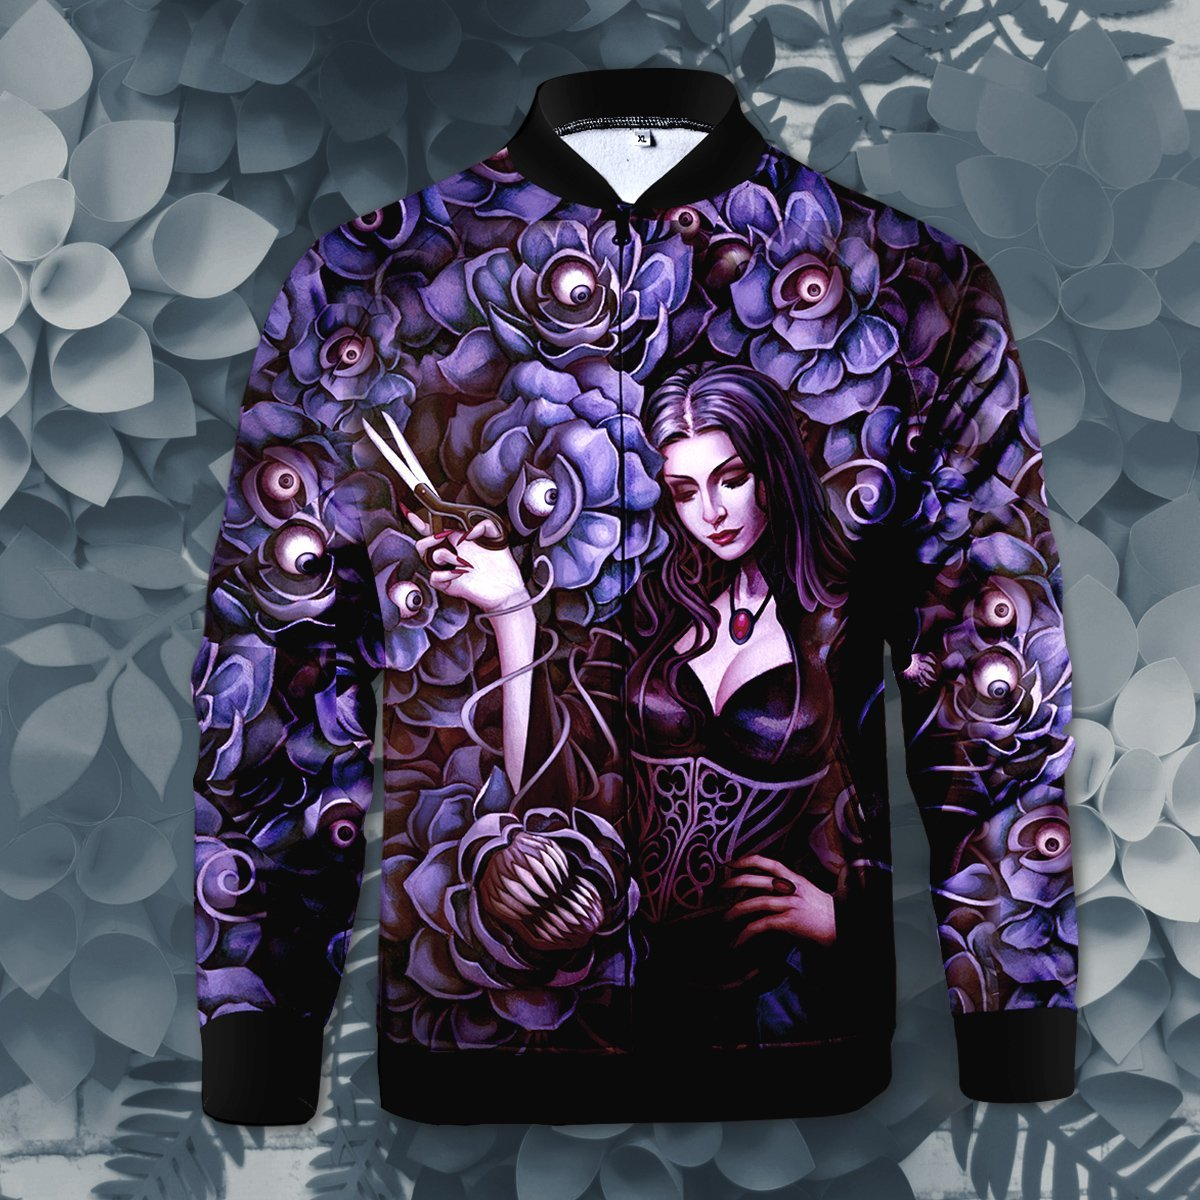 Morticia Addams Zipped Jacket S